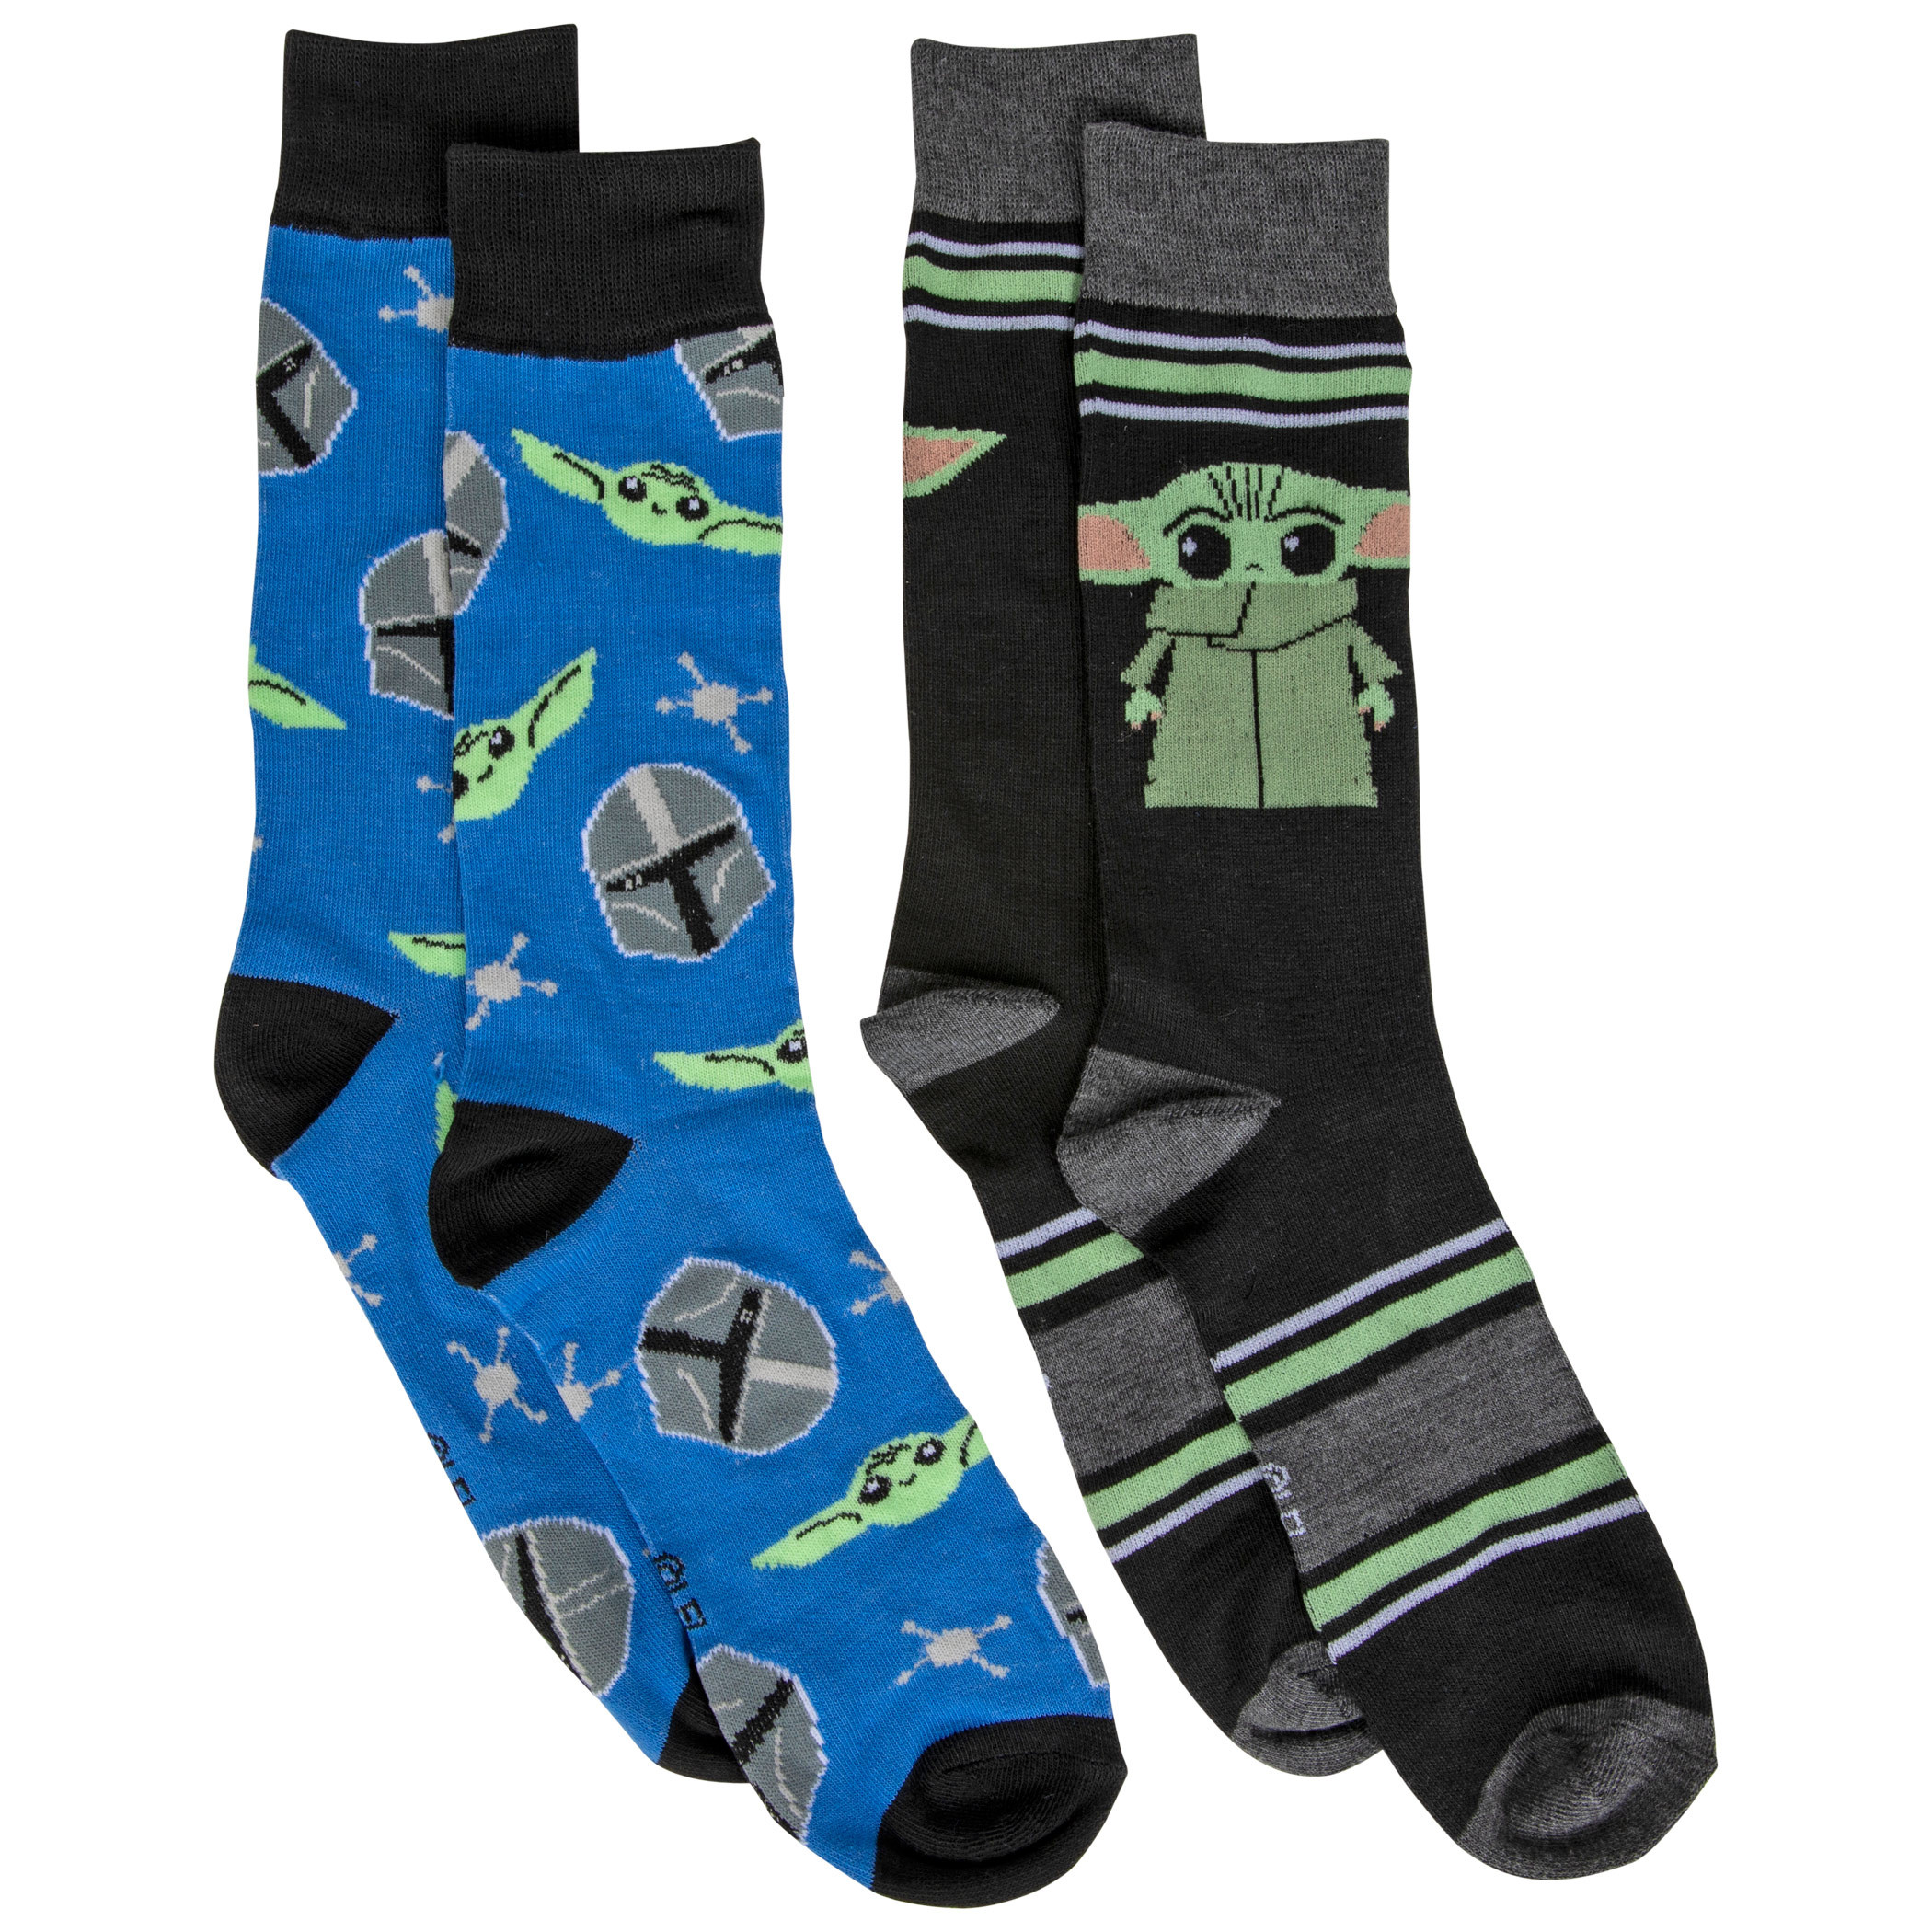 Star Wars The Mandalorian The Child & The Way 2-Pack of Casual Crew Socks